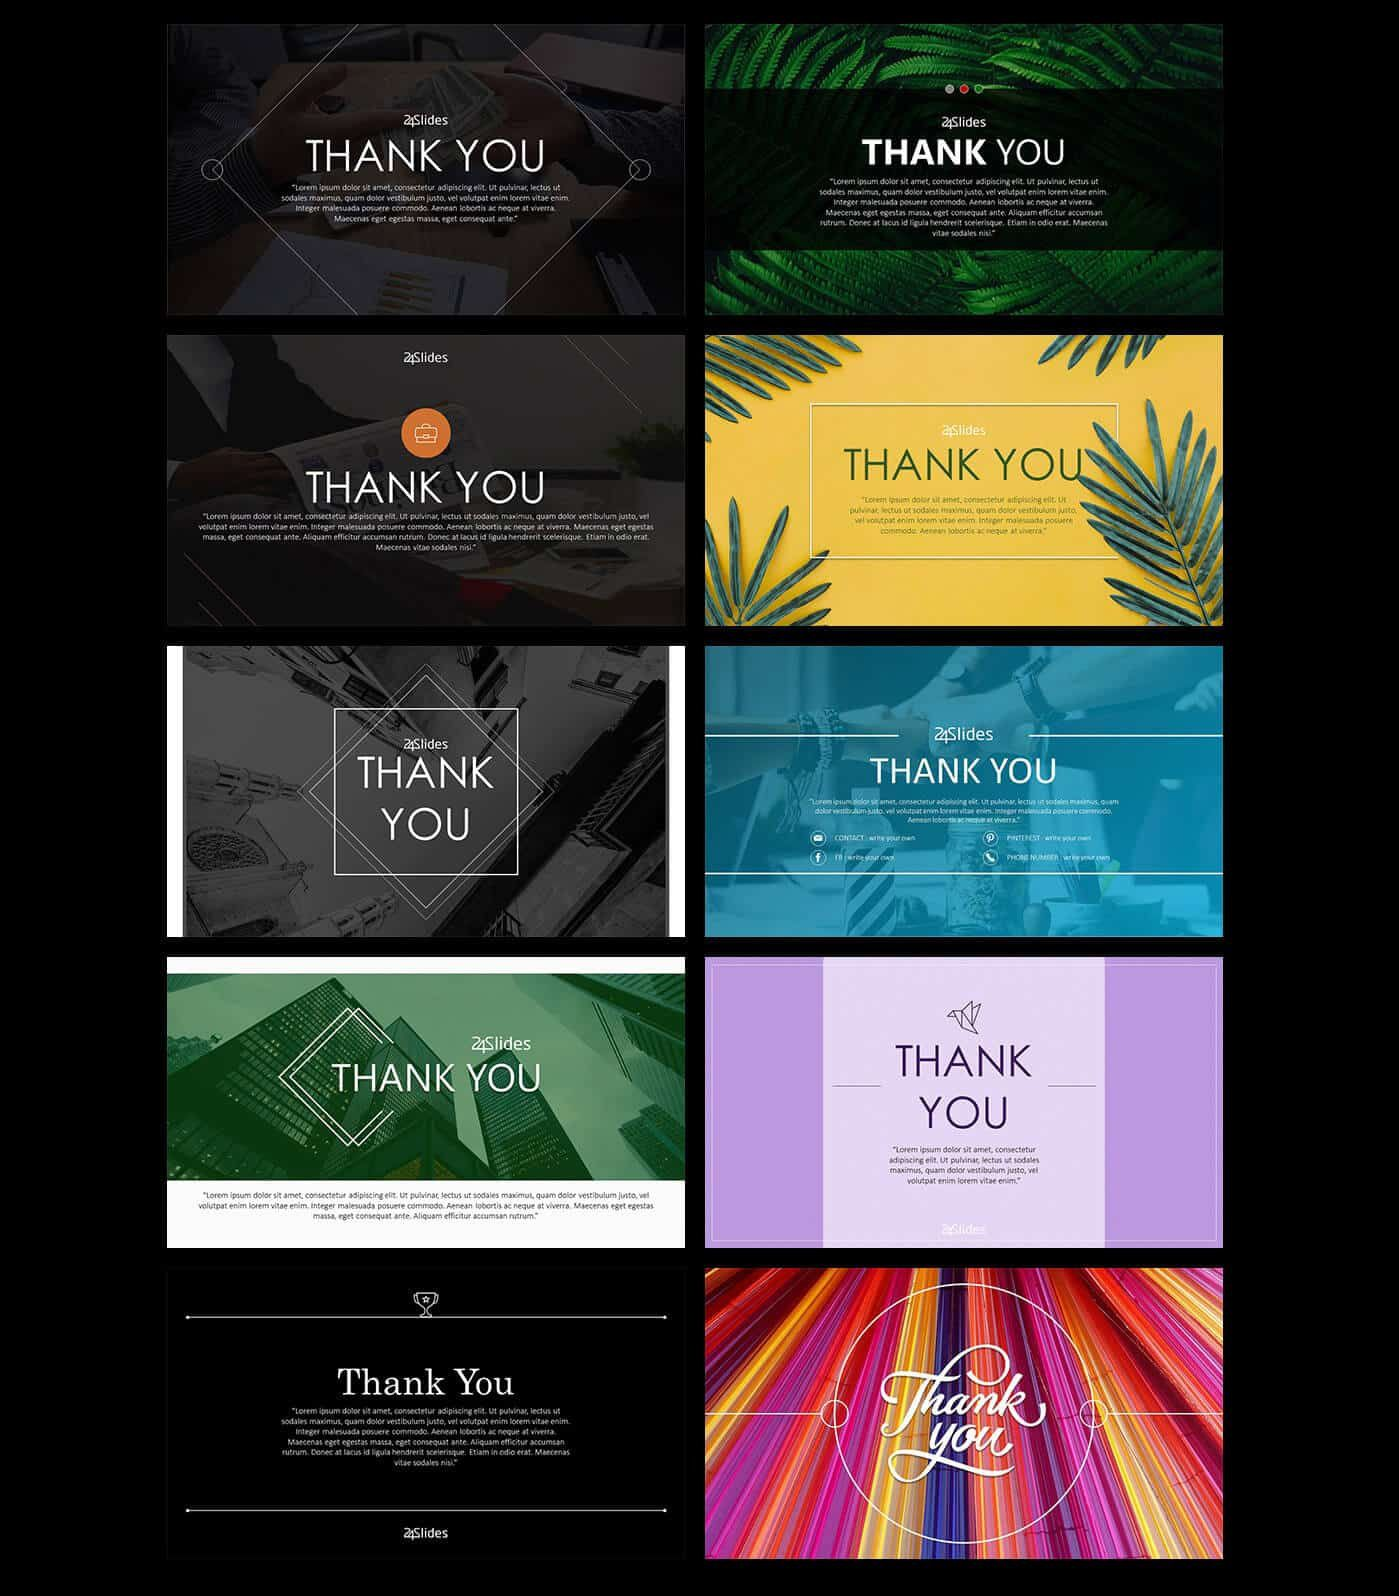 001 Magnificent Free Downloadable Powerpoint Template Highest Clarity  Templates Download Animated Background Design ThemeFull